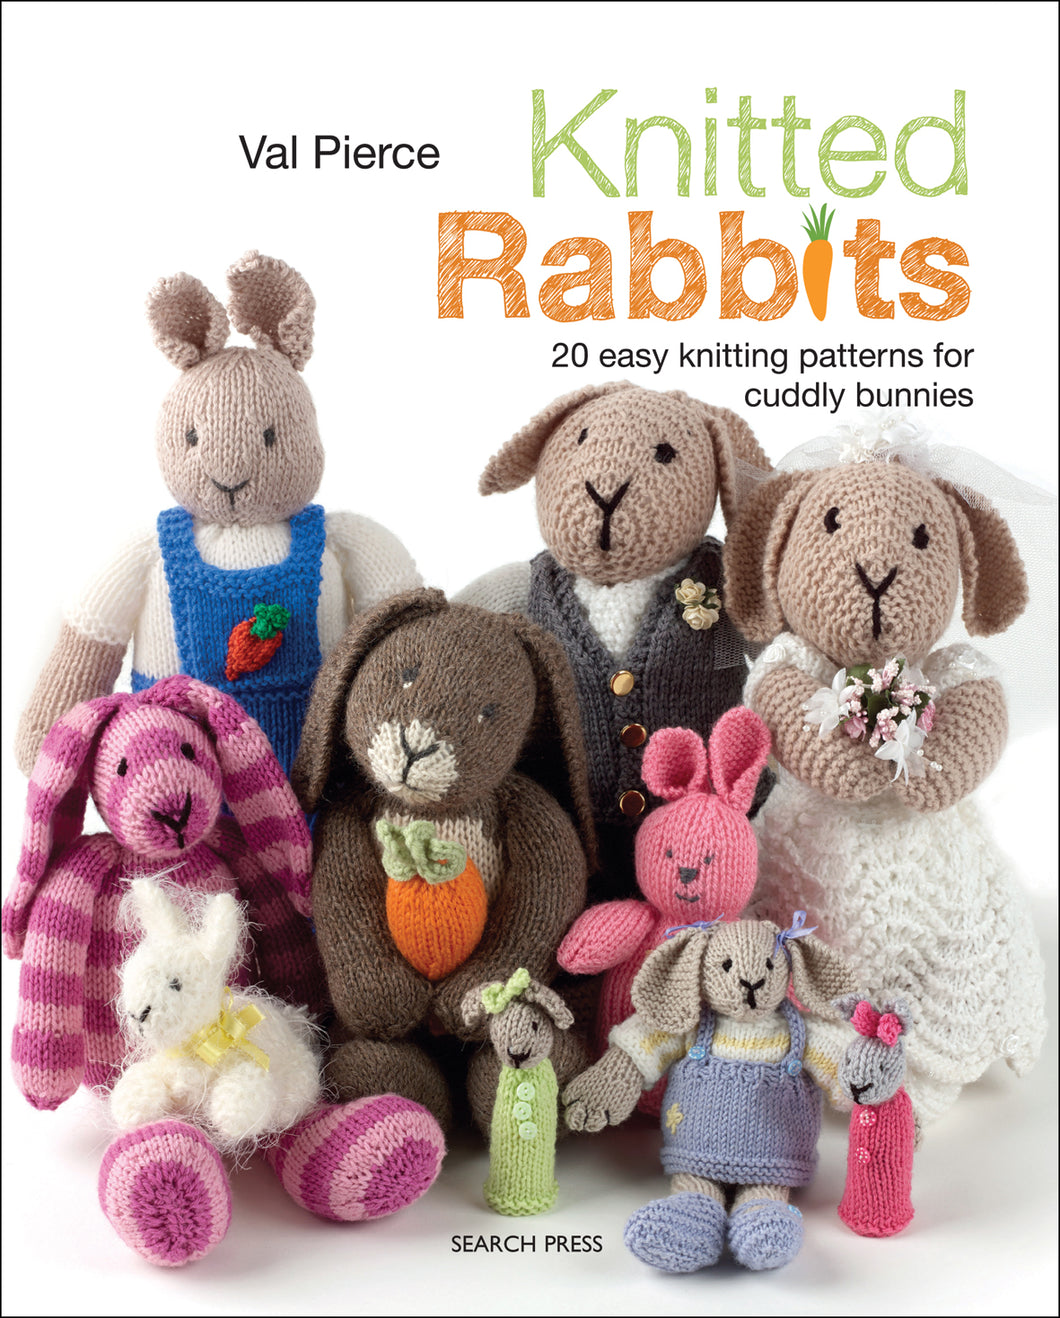 Knitted Rabbits by Val Pierce